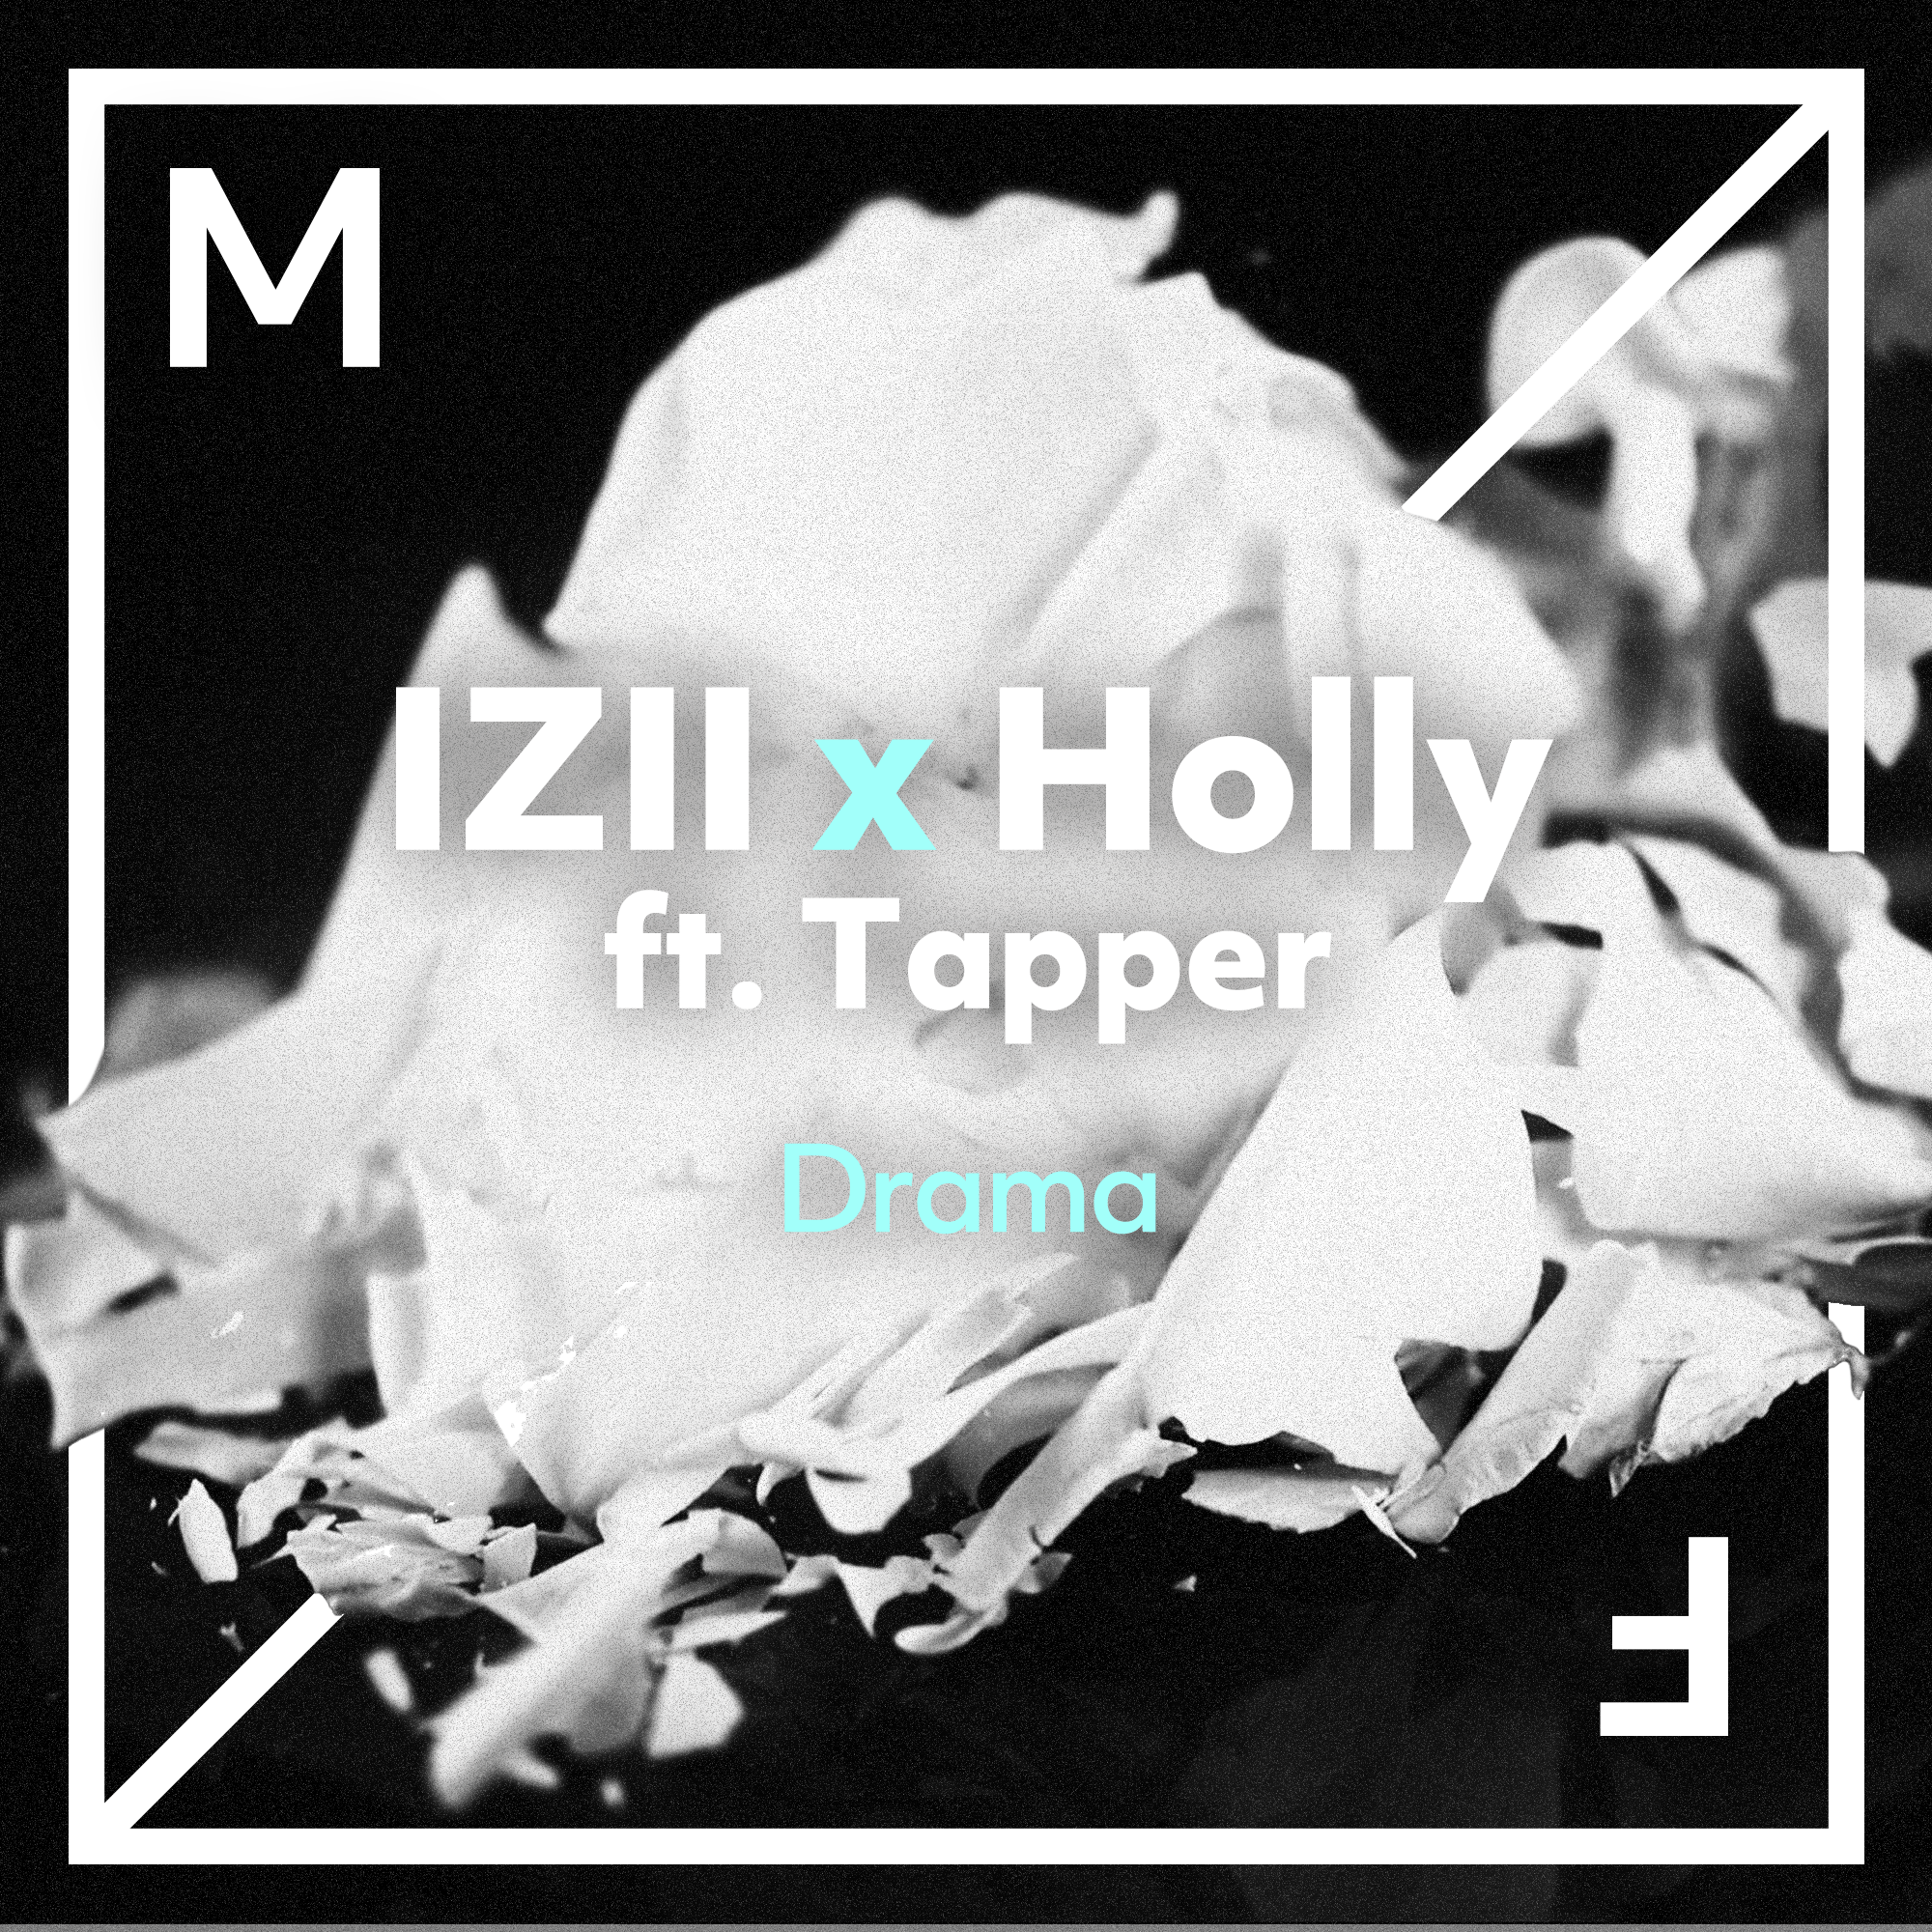 17_mfr_iziixholly_drama_artwork.png